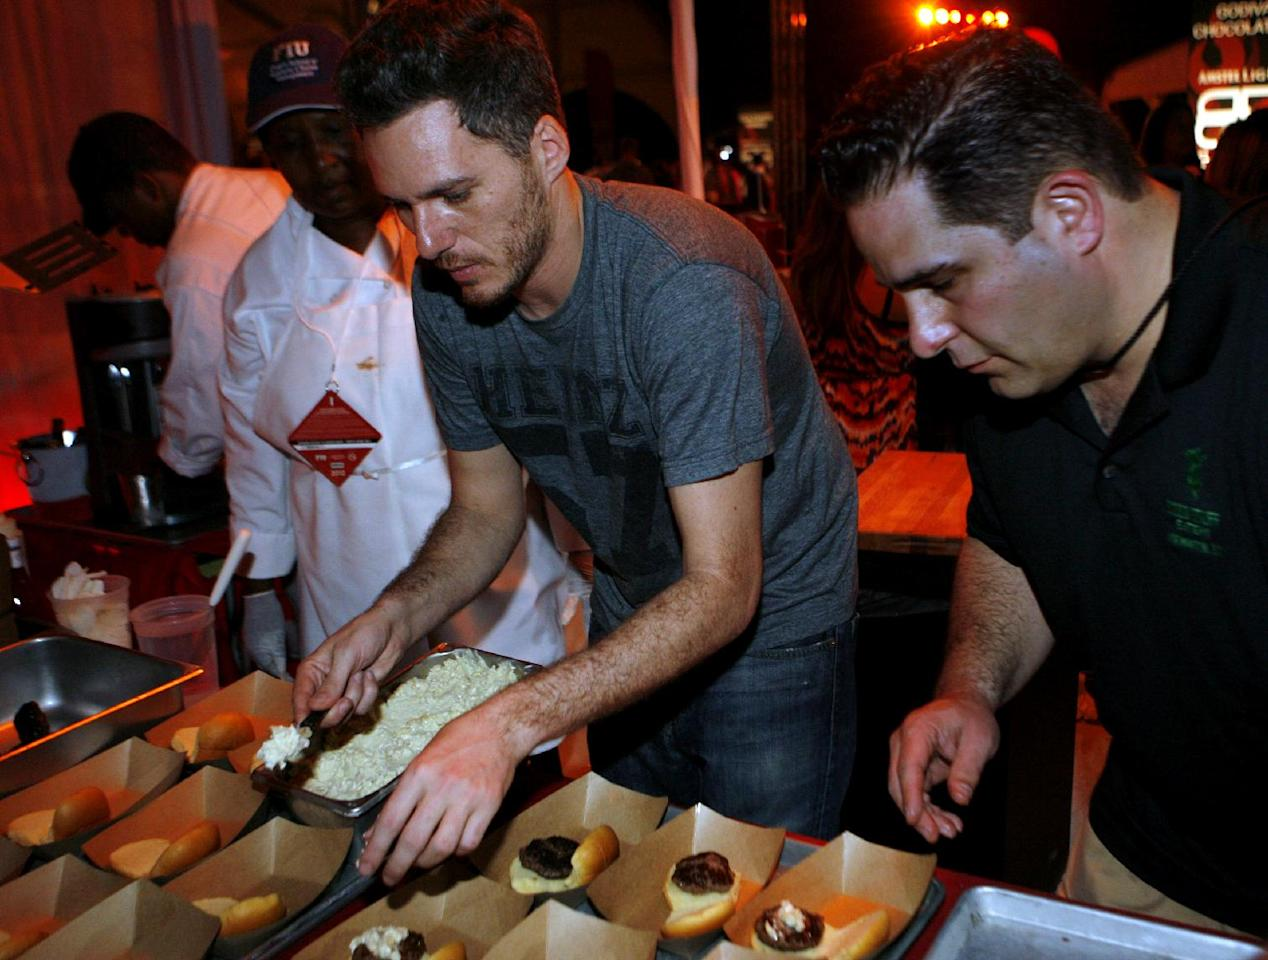 Spike Mendelsohn of Good Stuff Eatery, center, works on his creation while competing in the Burger Bash at the Food Network South Beach Wine & Food Festival in Miami Beach, Fla., Friday, Feb. 24, 2012. (AP photo/Jeffrey M. Boan)